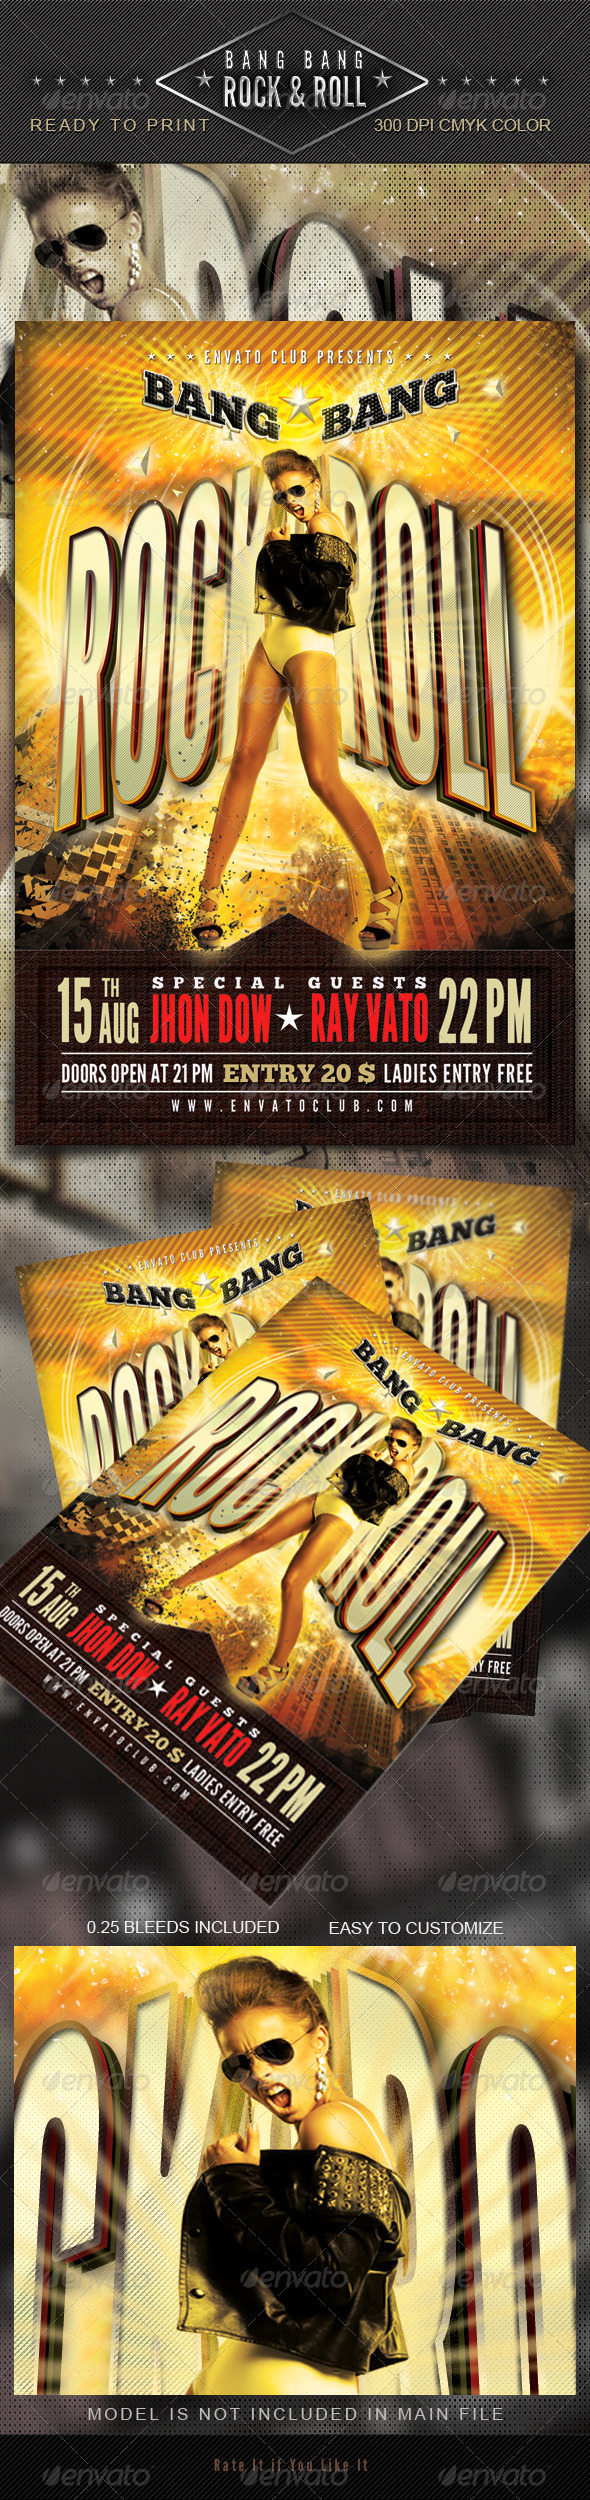 Bang Bang Rock & Roll Flyer